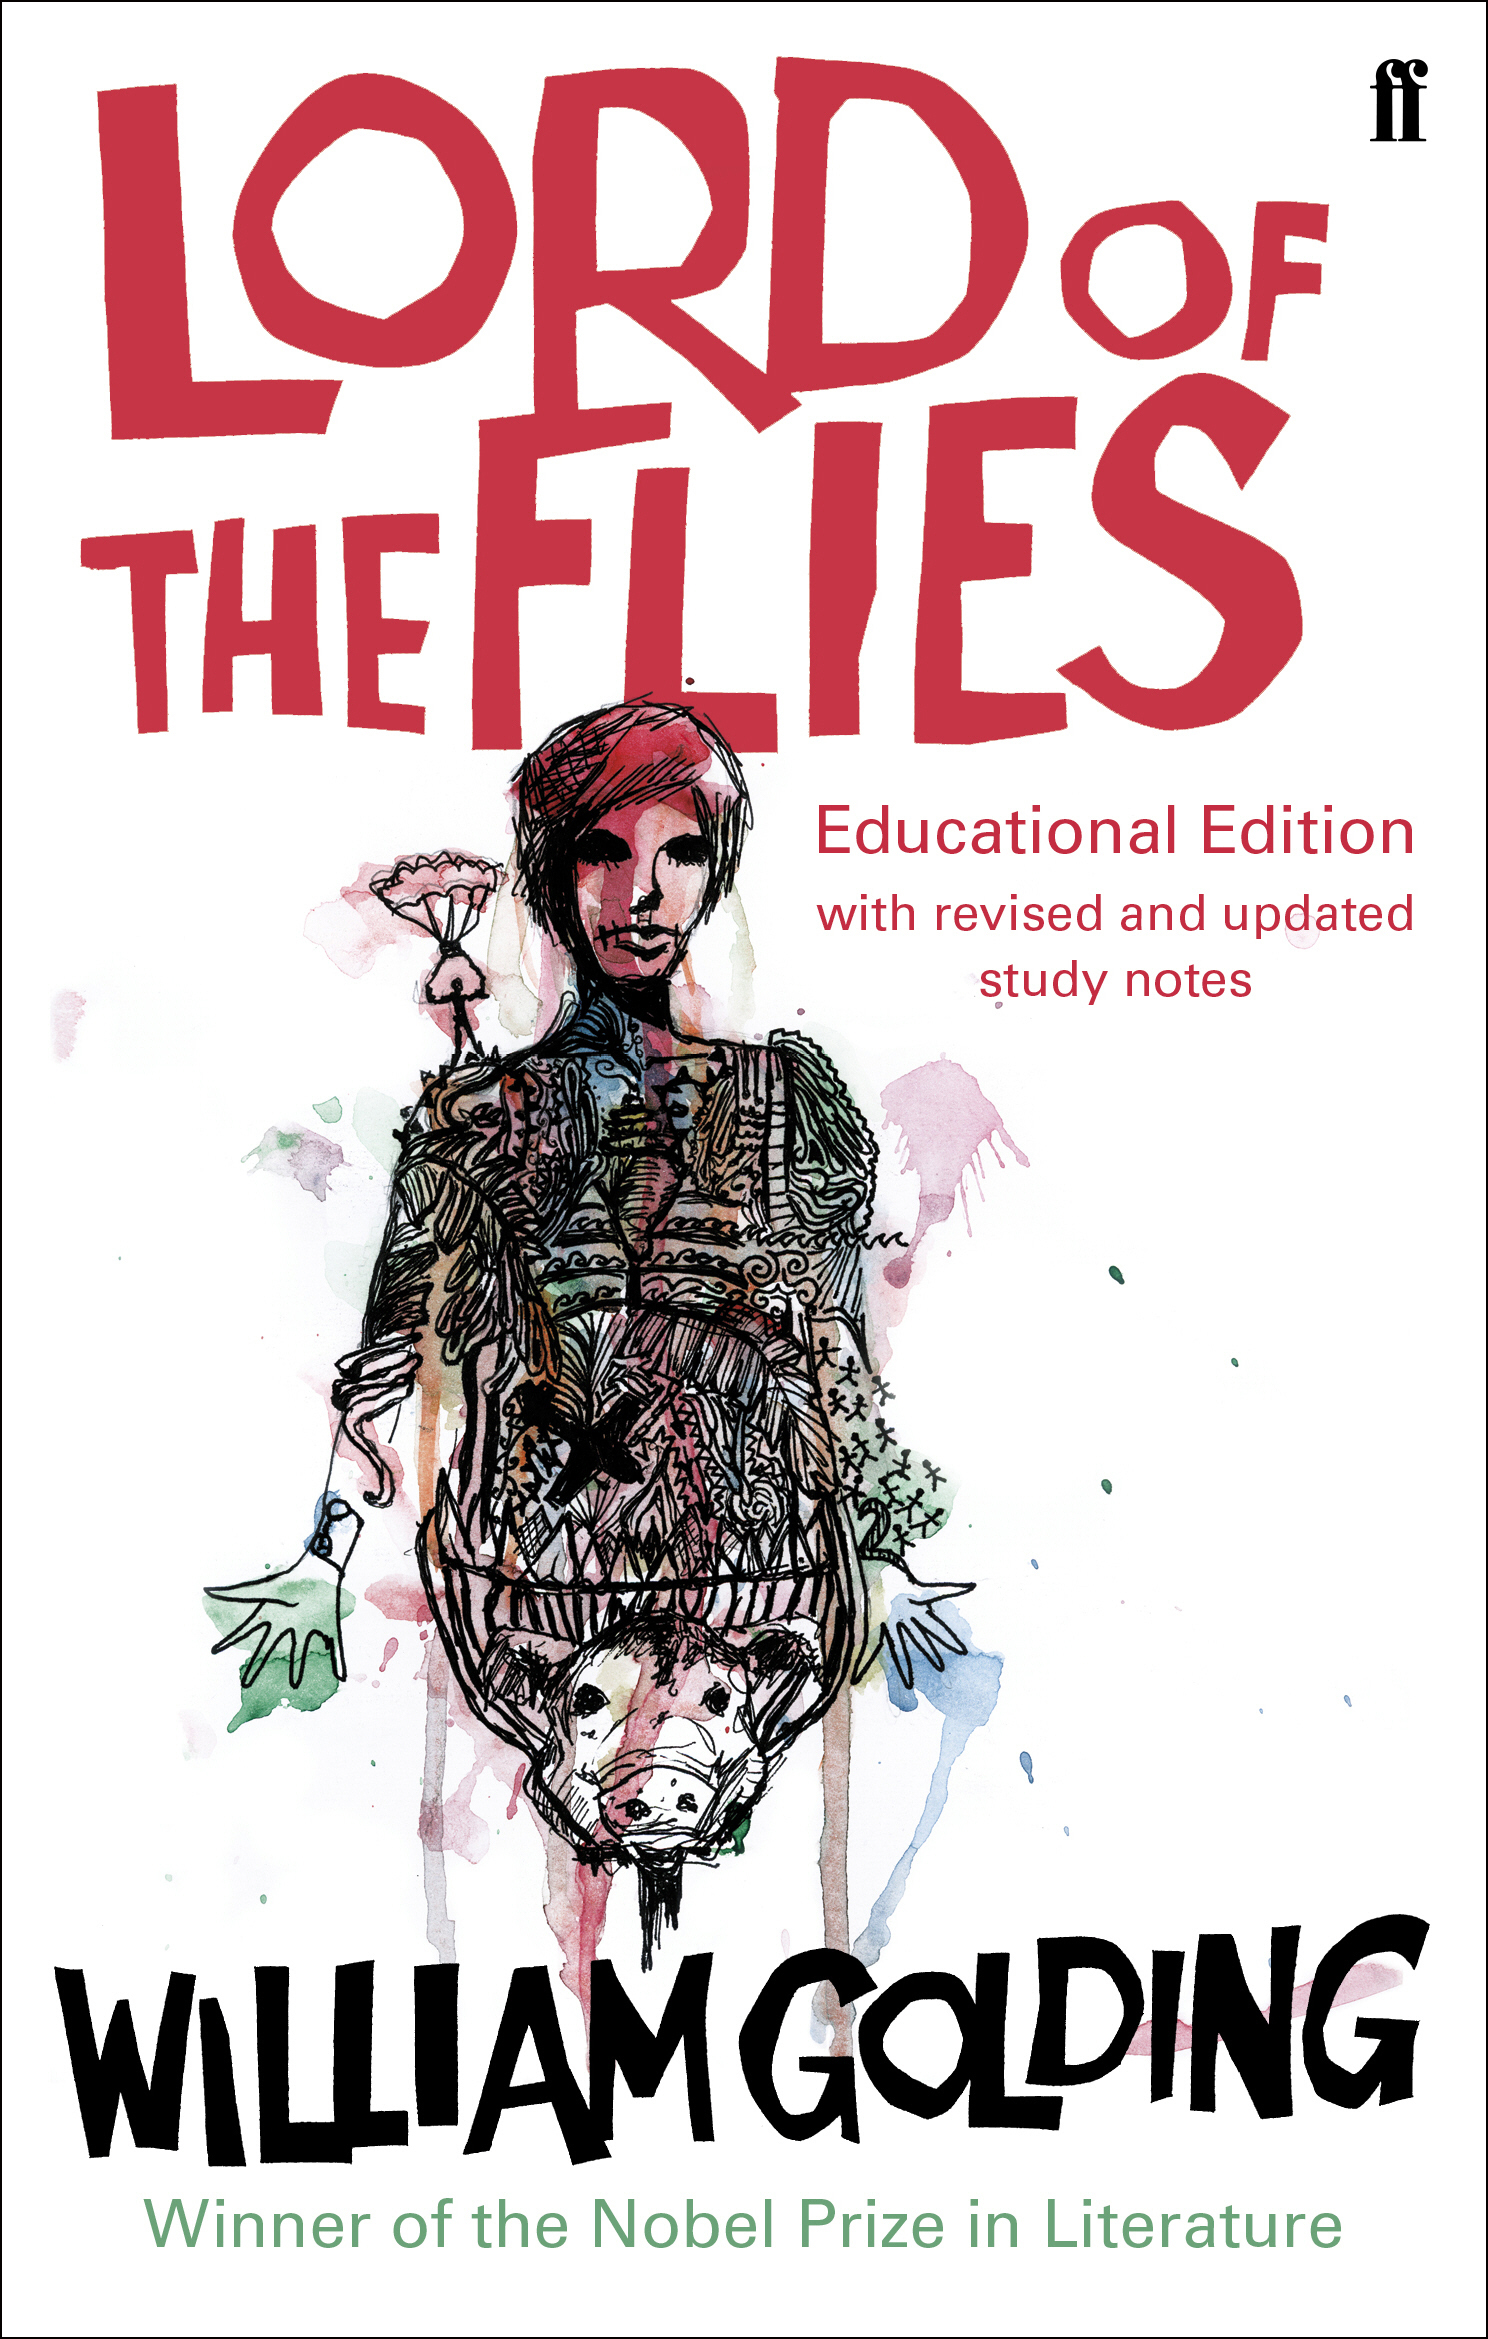 an analysis of human nature in the novel lord of the flies by william golding Lord of the flies- william golding of human nature in general, i believe golding uses the novel these references give 'lord of the.